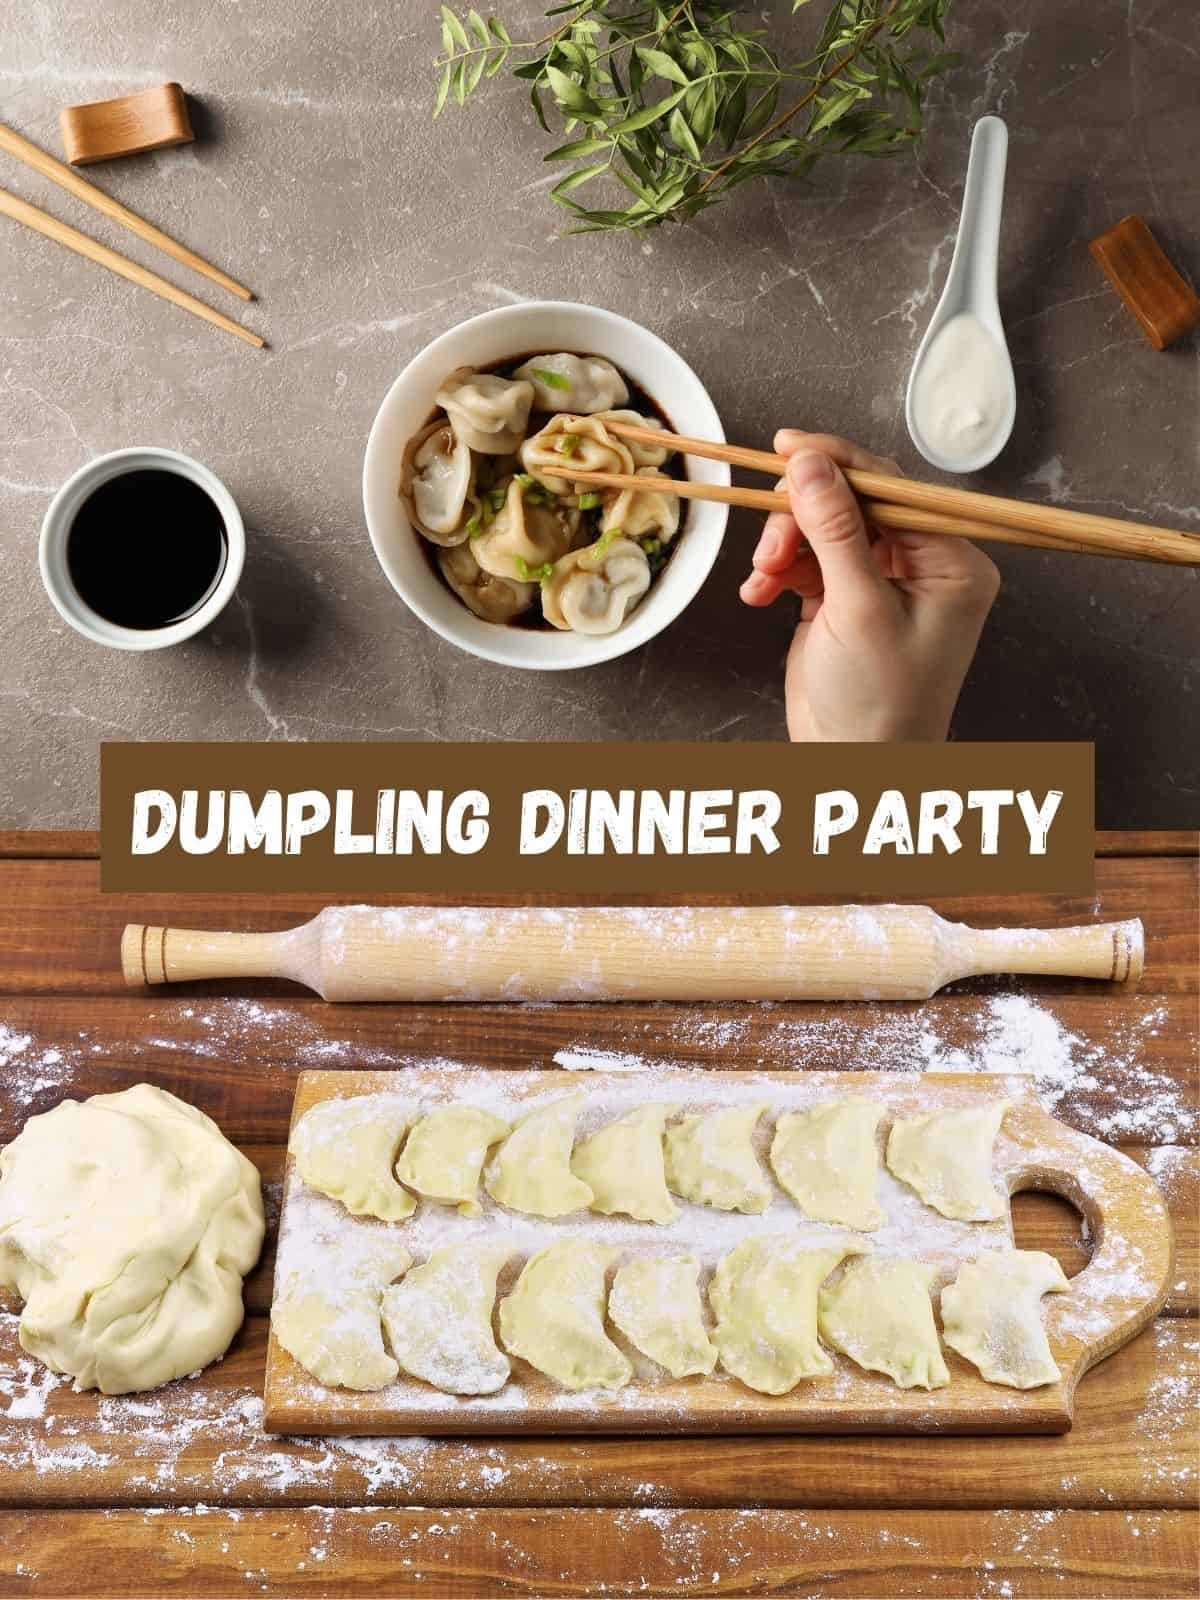 dumpling dinner party with fresh and cooked dumplings